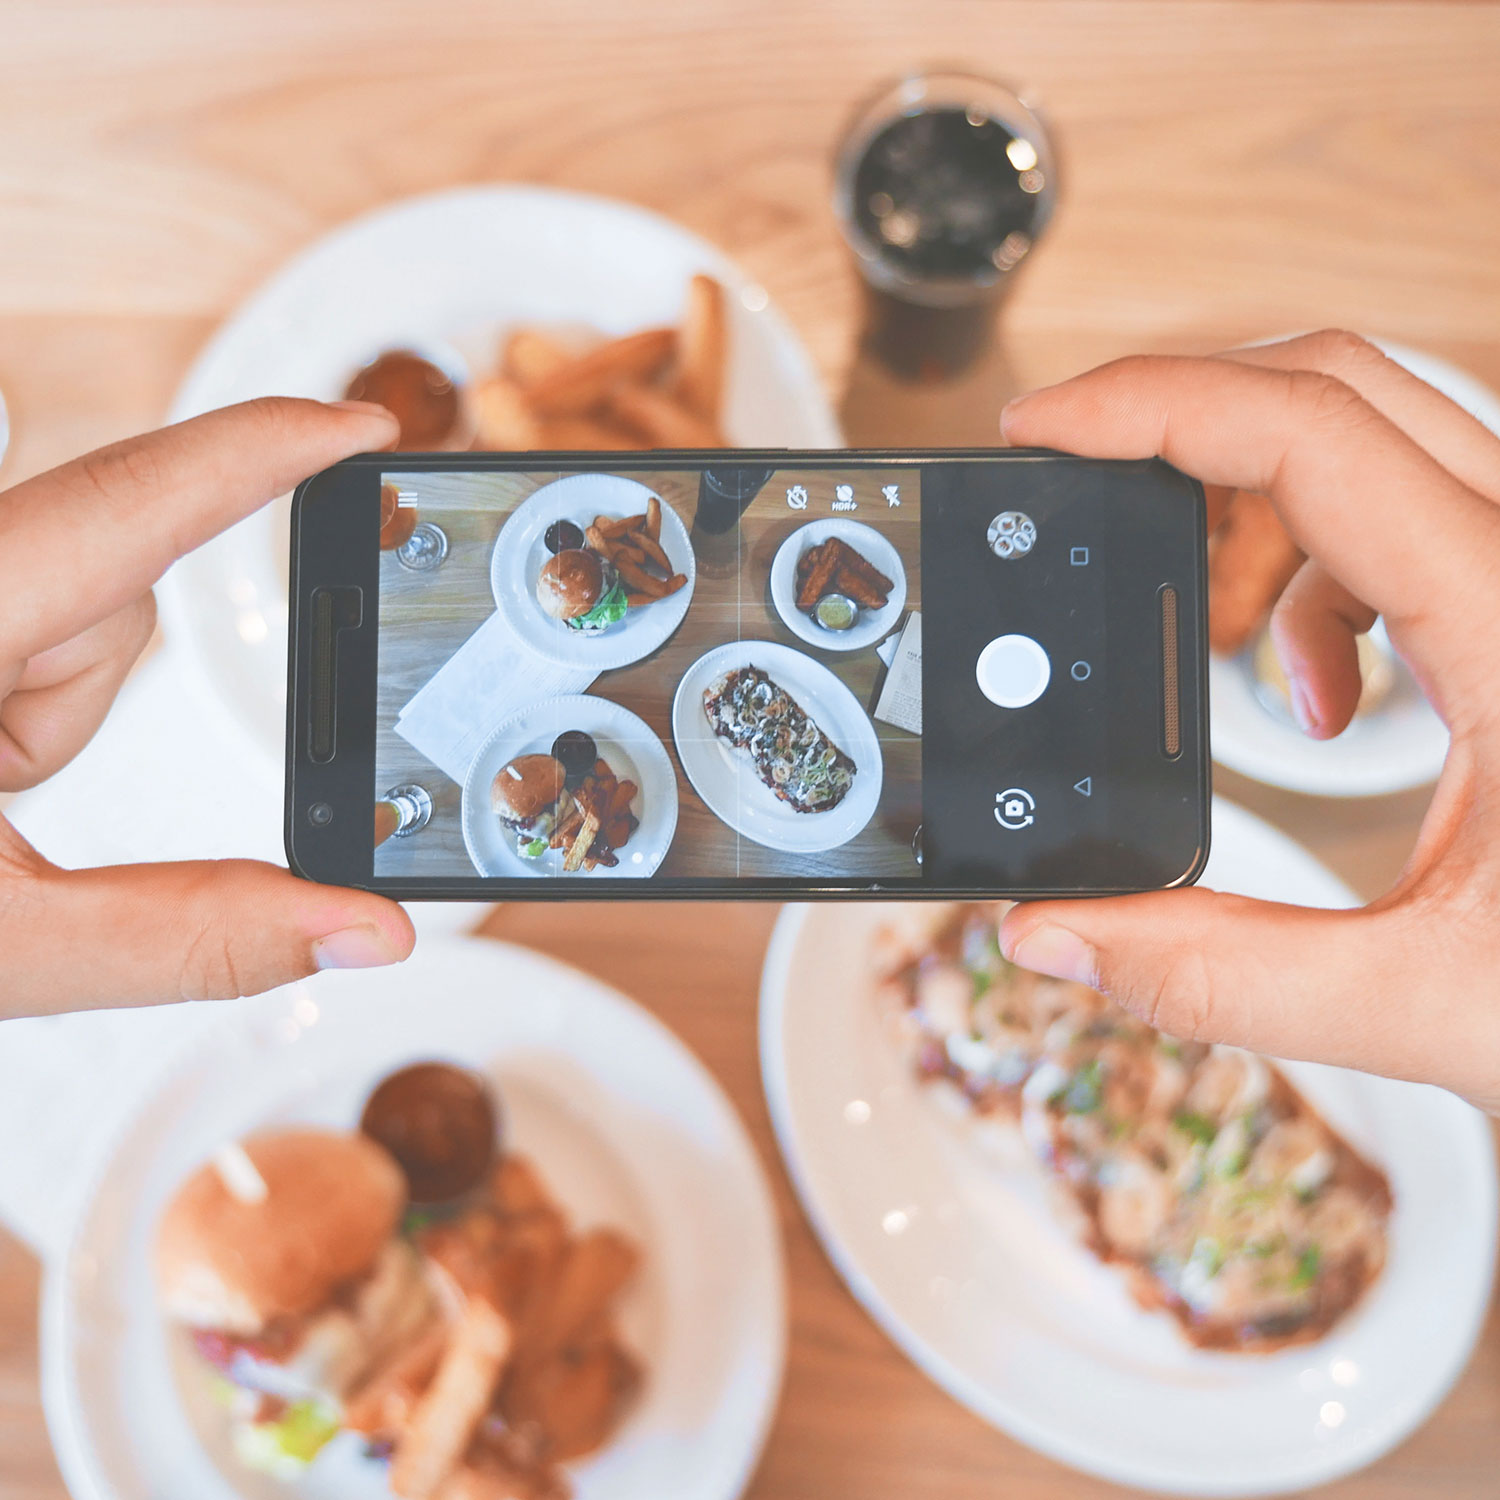 Too many chefs? How to manage social media for your restaurant